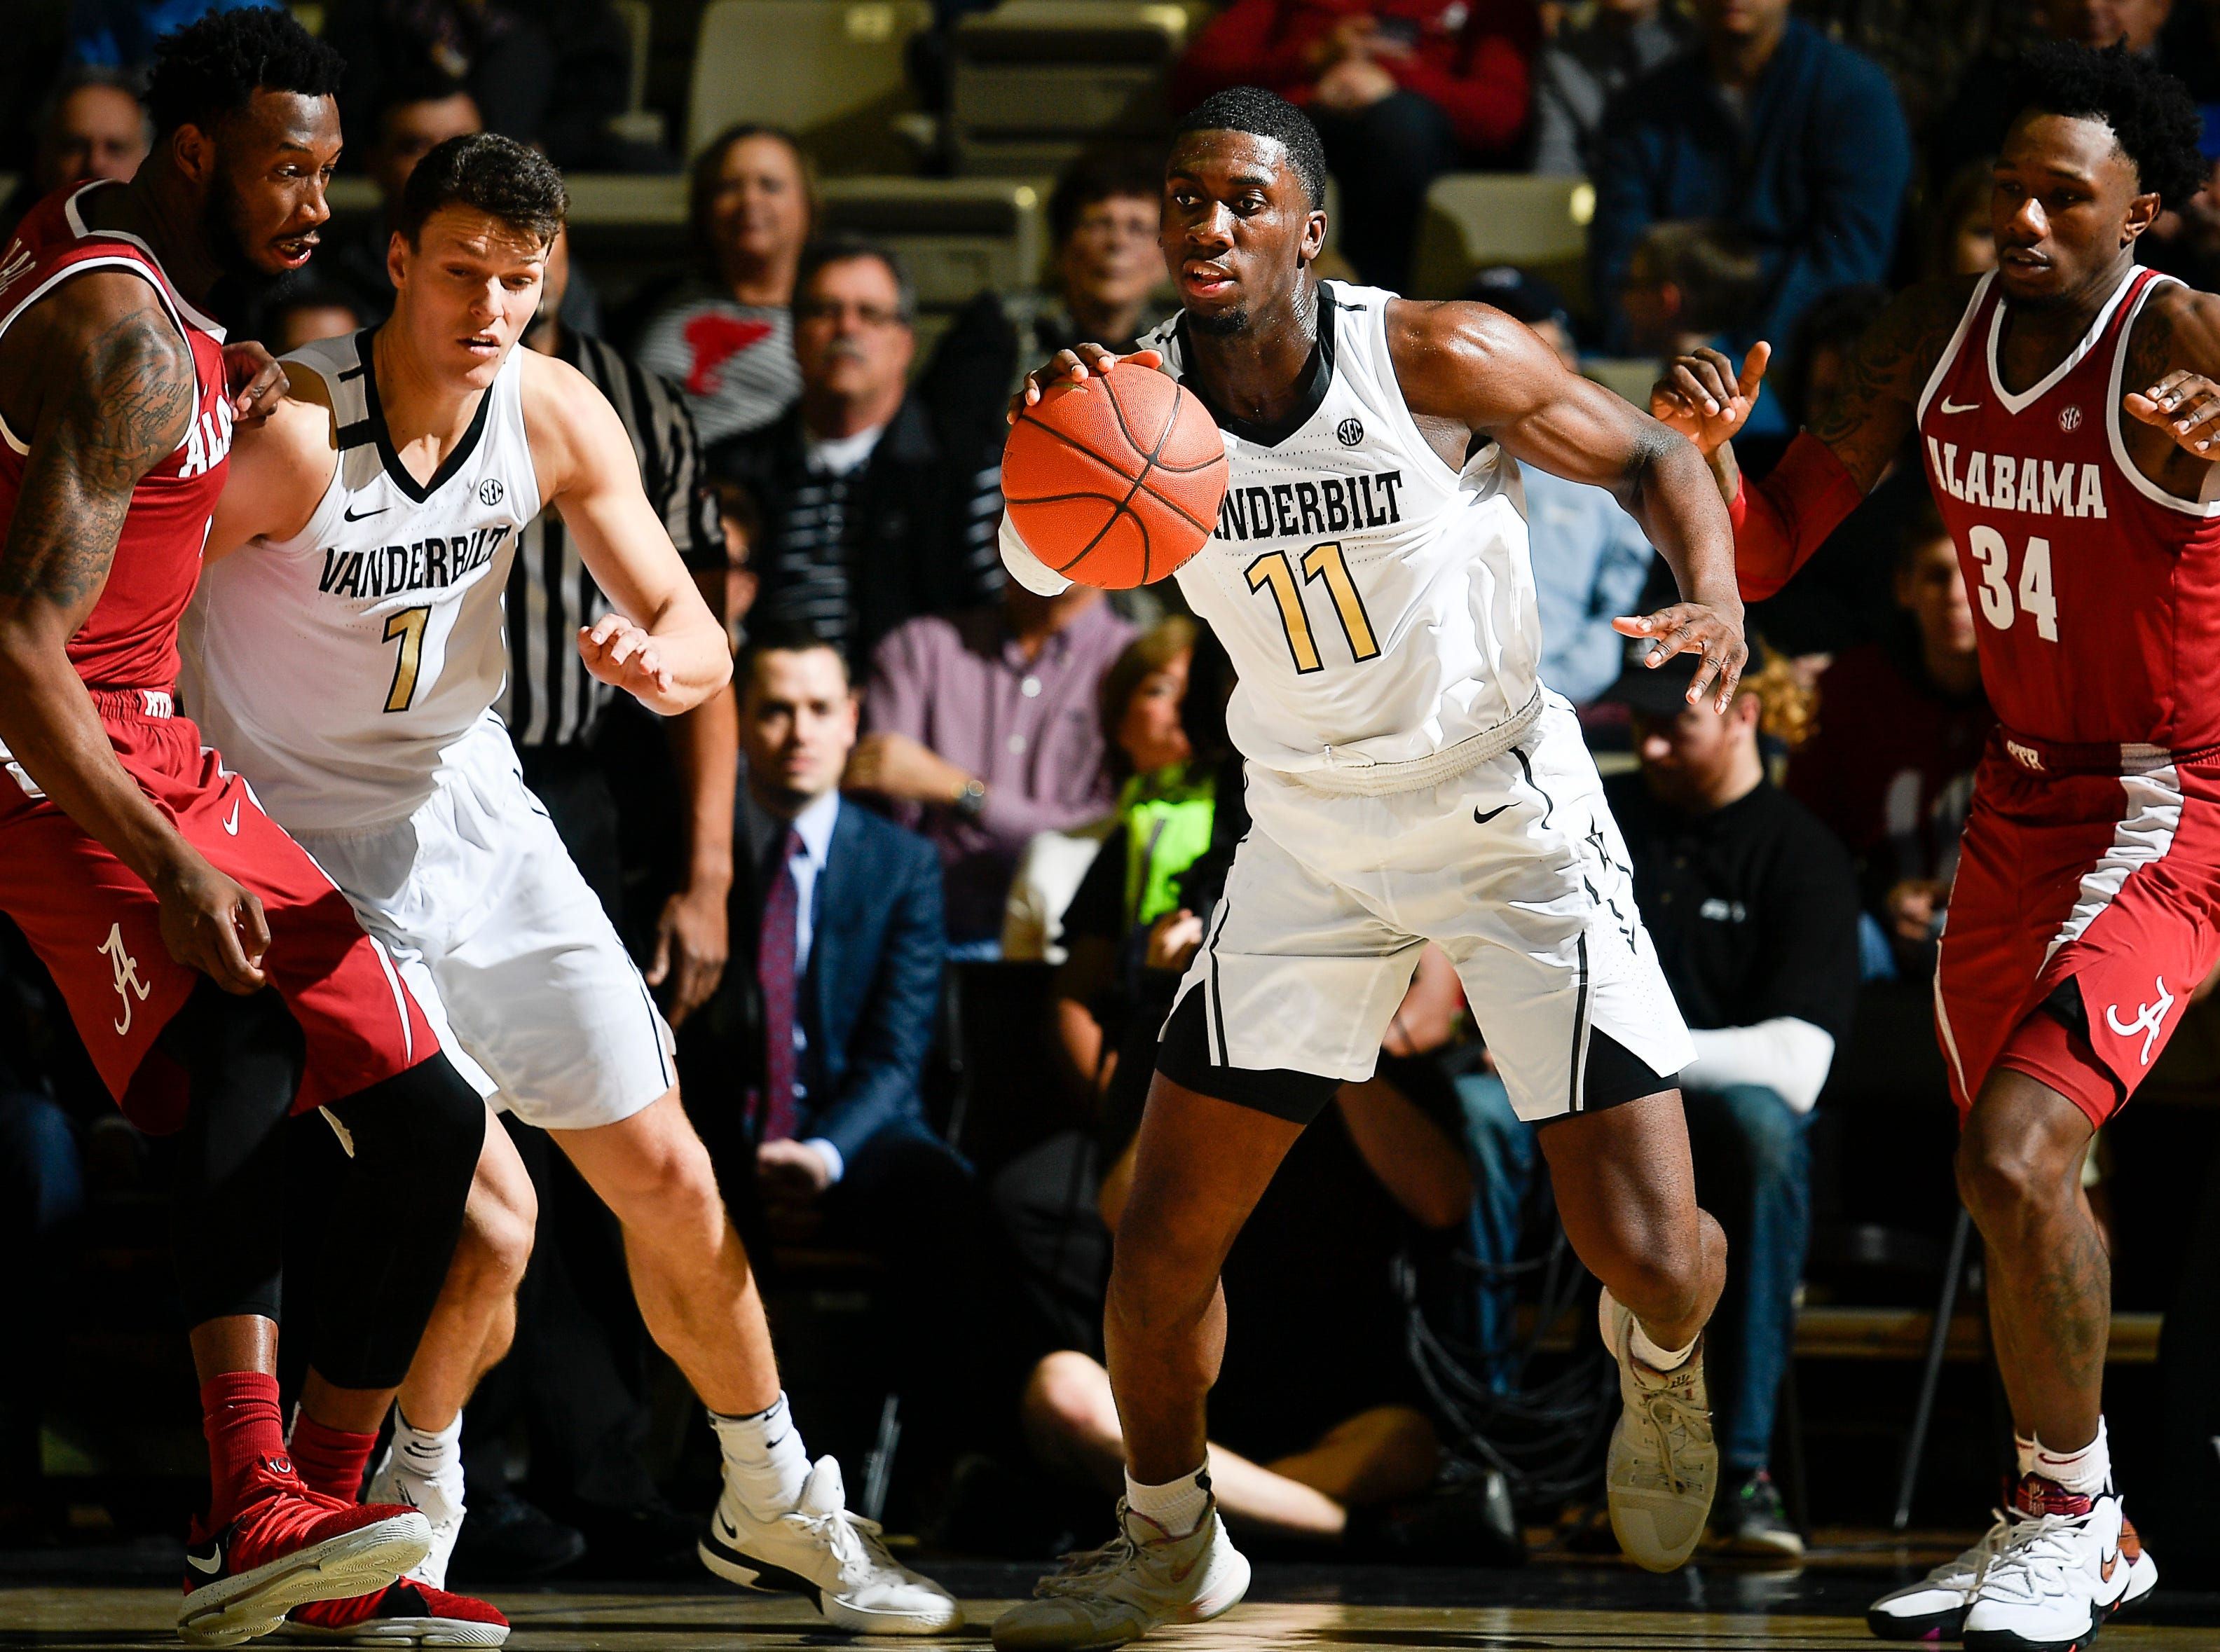 Vanderbilt forward Simisola Shittu (11) races up the court past the Alabama defense during the second half at Memorial Gym Saturday Feb. 9, 2019 in Nashville, Tenn.